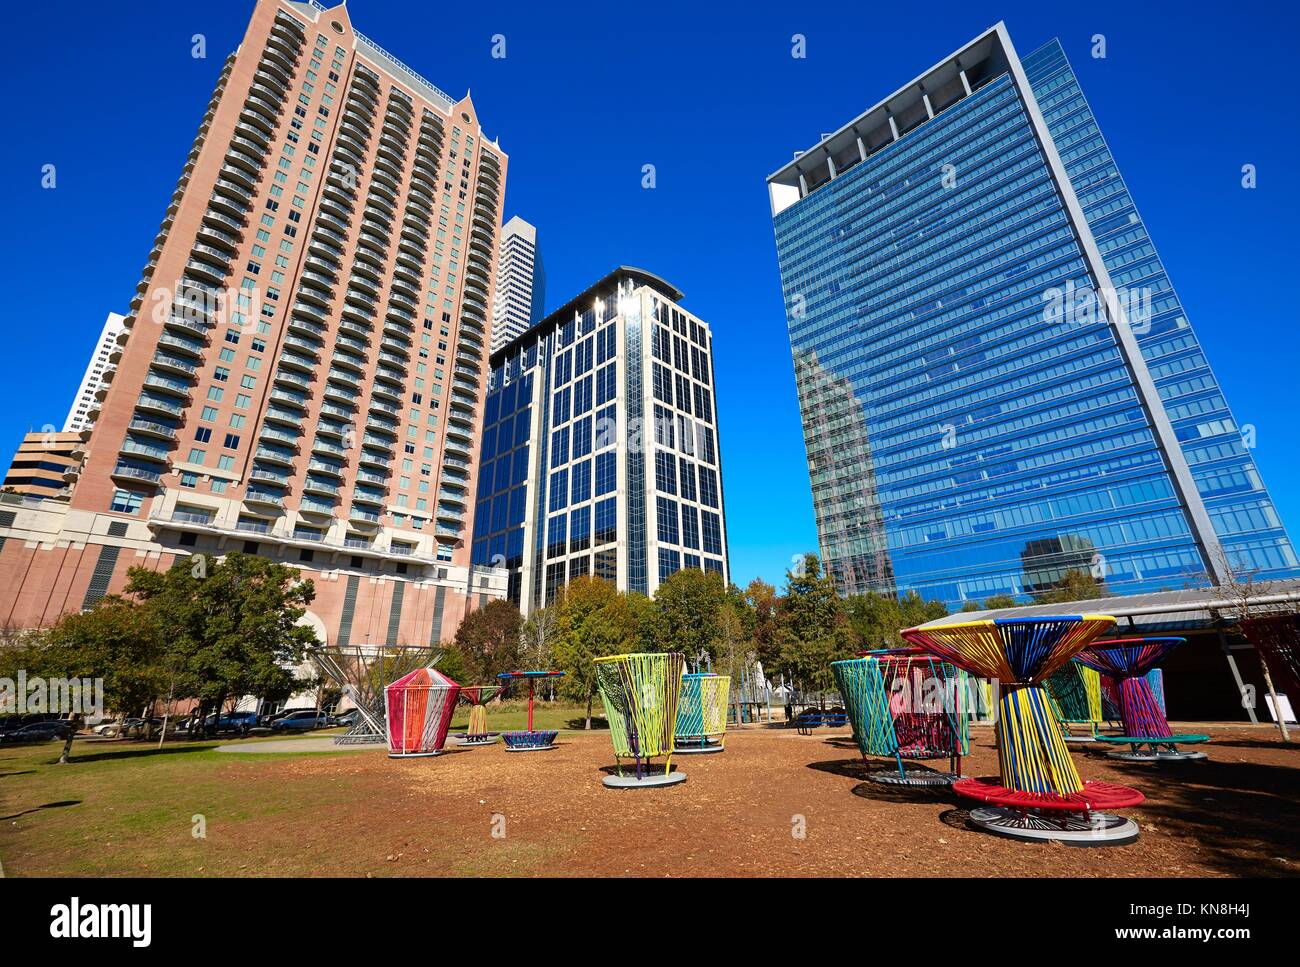 Houston Discovery green park in downtown Texas. - Stock Image